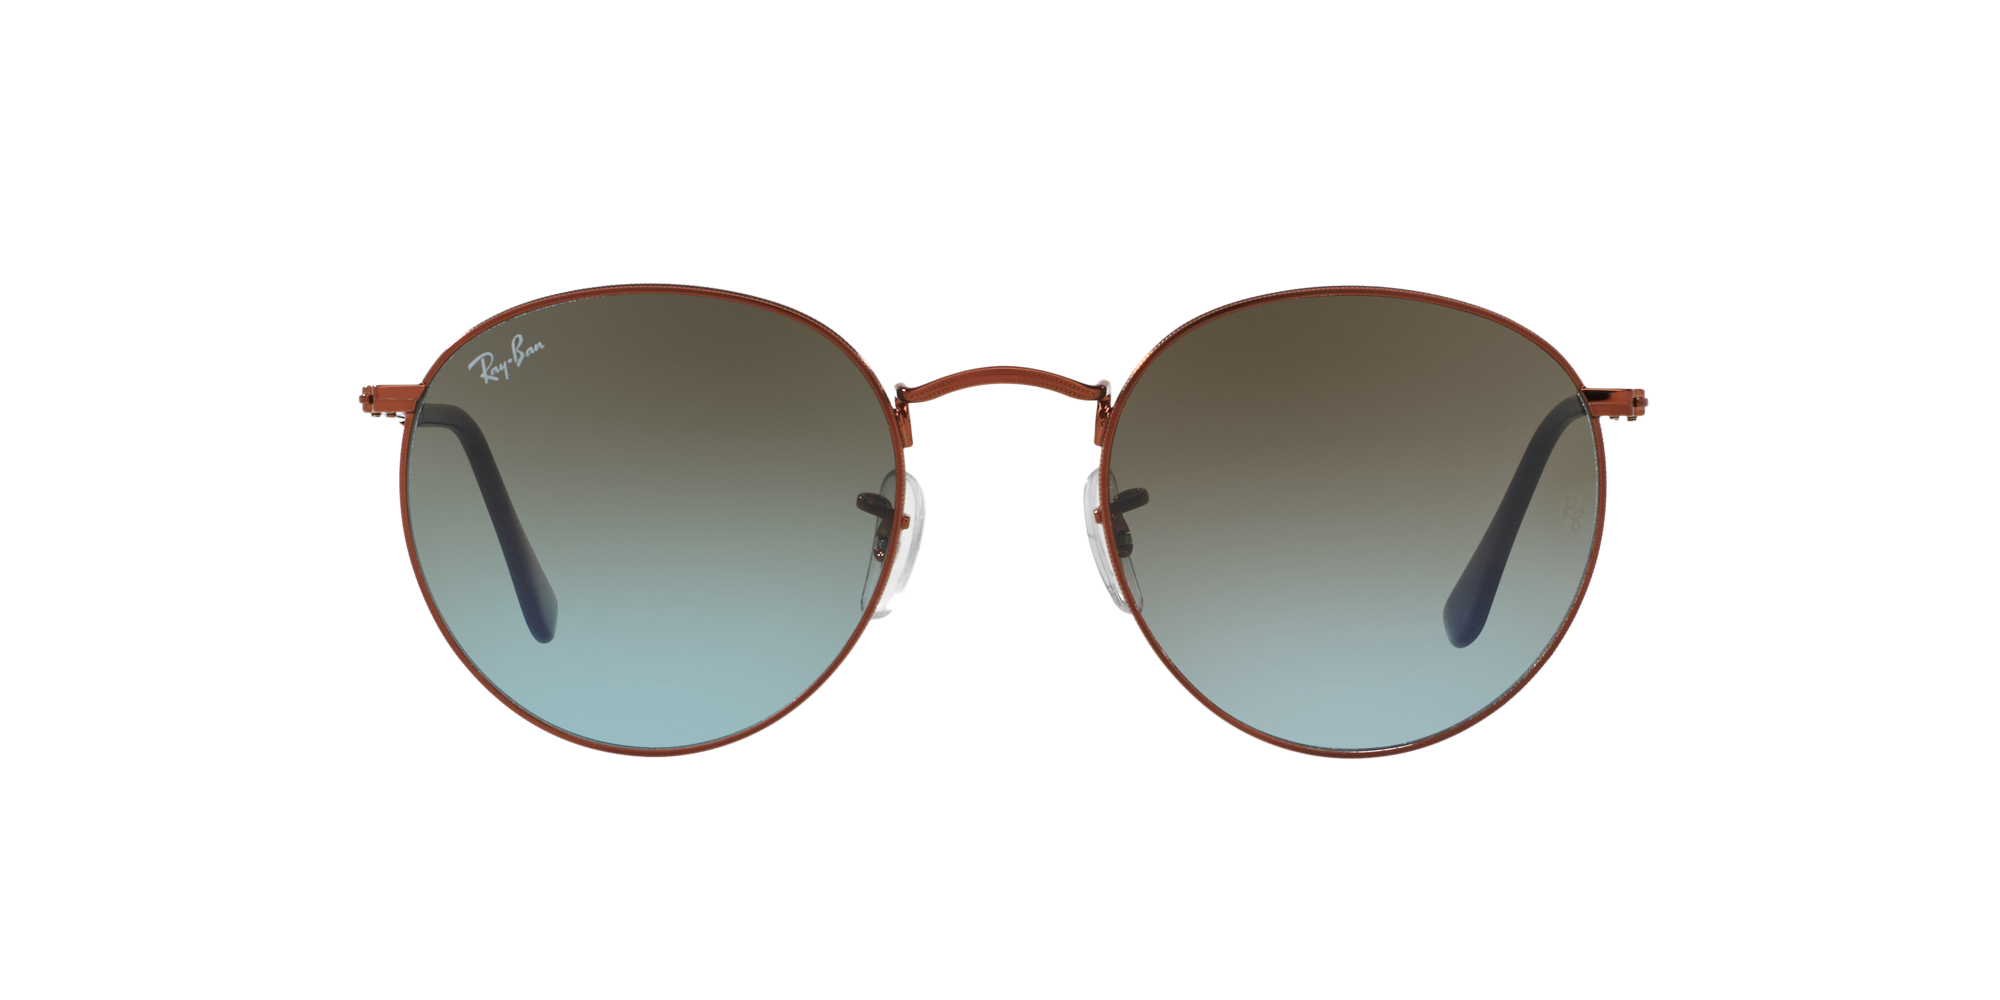 635cd66f8542c Ripley - Ray Ban Round Metal Shiny Dark Bronze lente Brown Blue Gradient